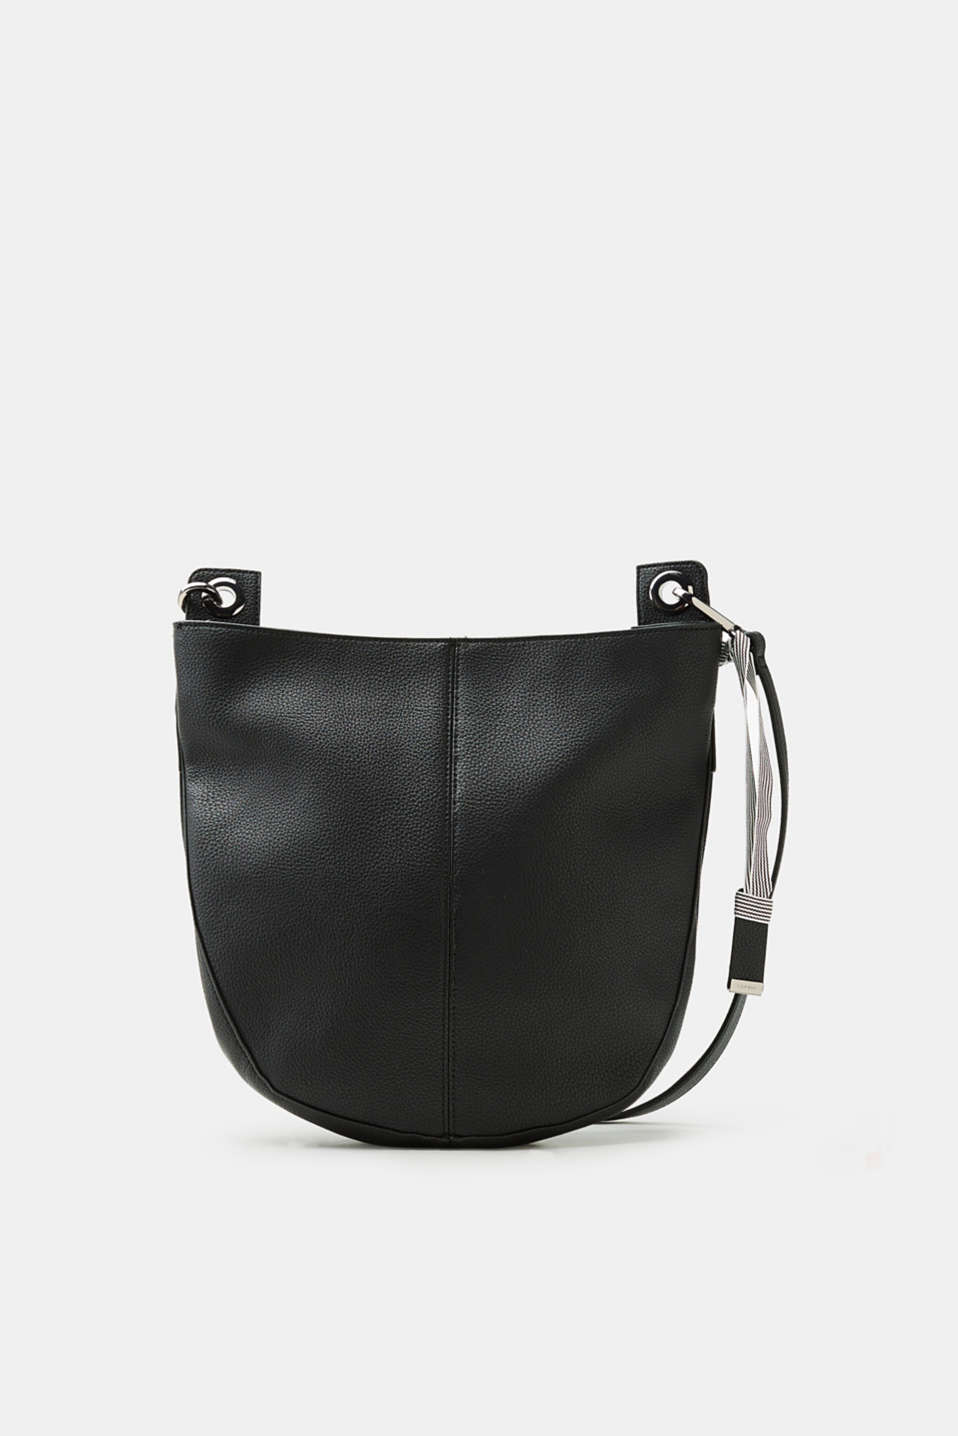 Thanks to its modern, minimalist design and functional size, this shoulder bag is an everyday essential.